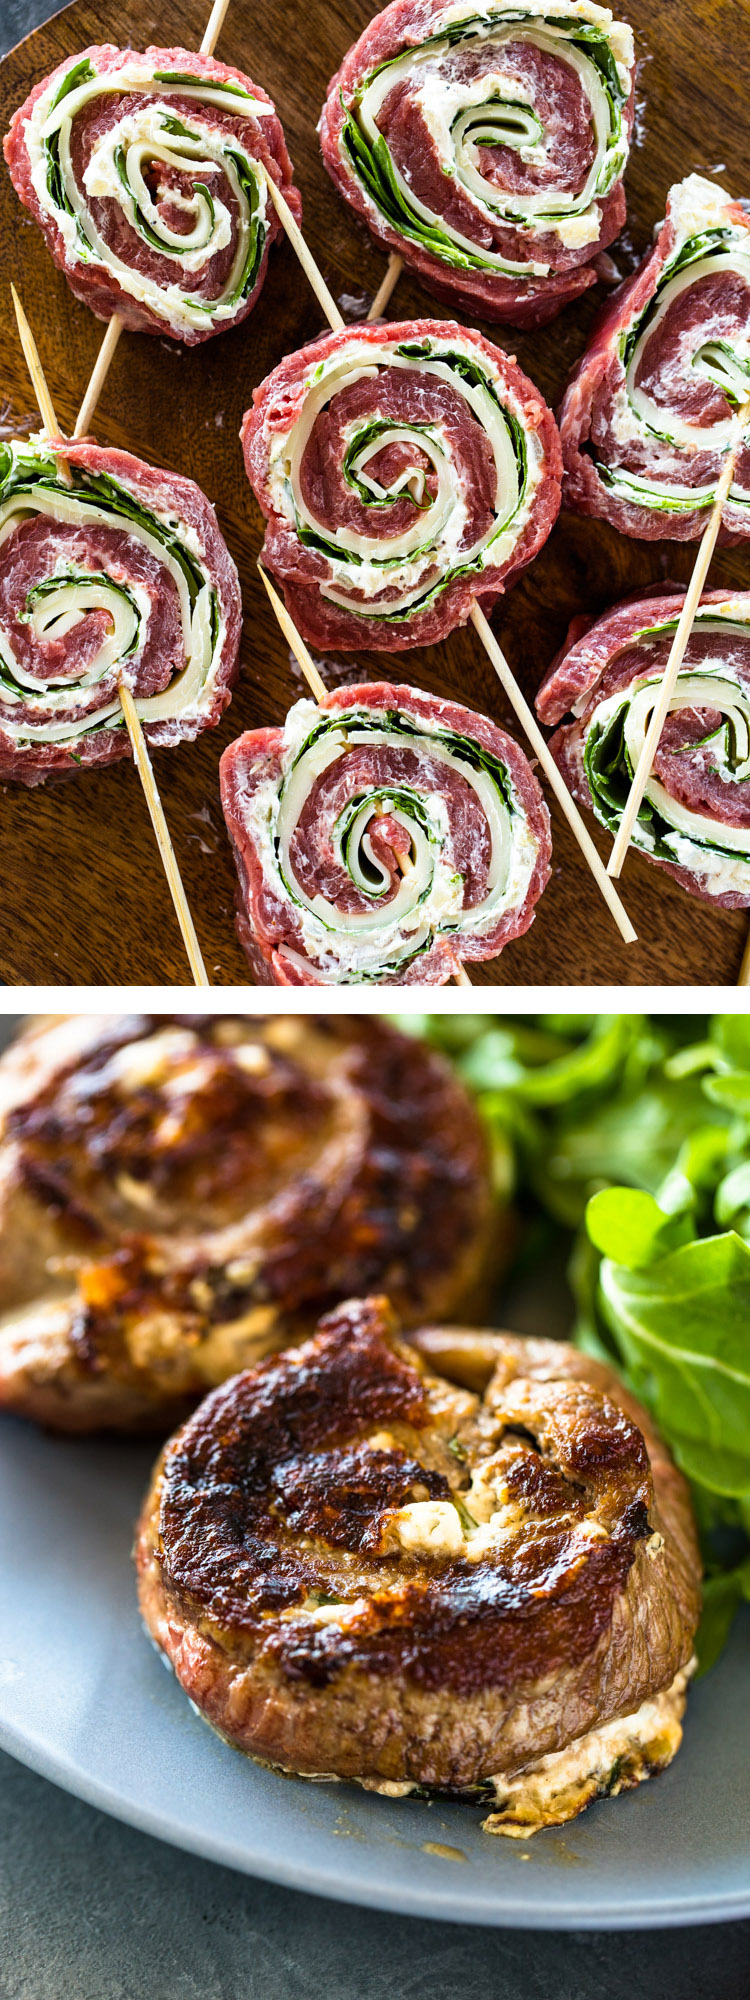 Spinach Cheese Stuffed Flank Steak Rolls